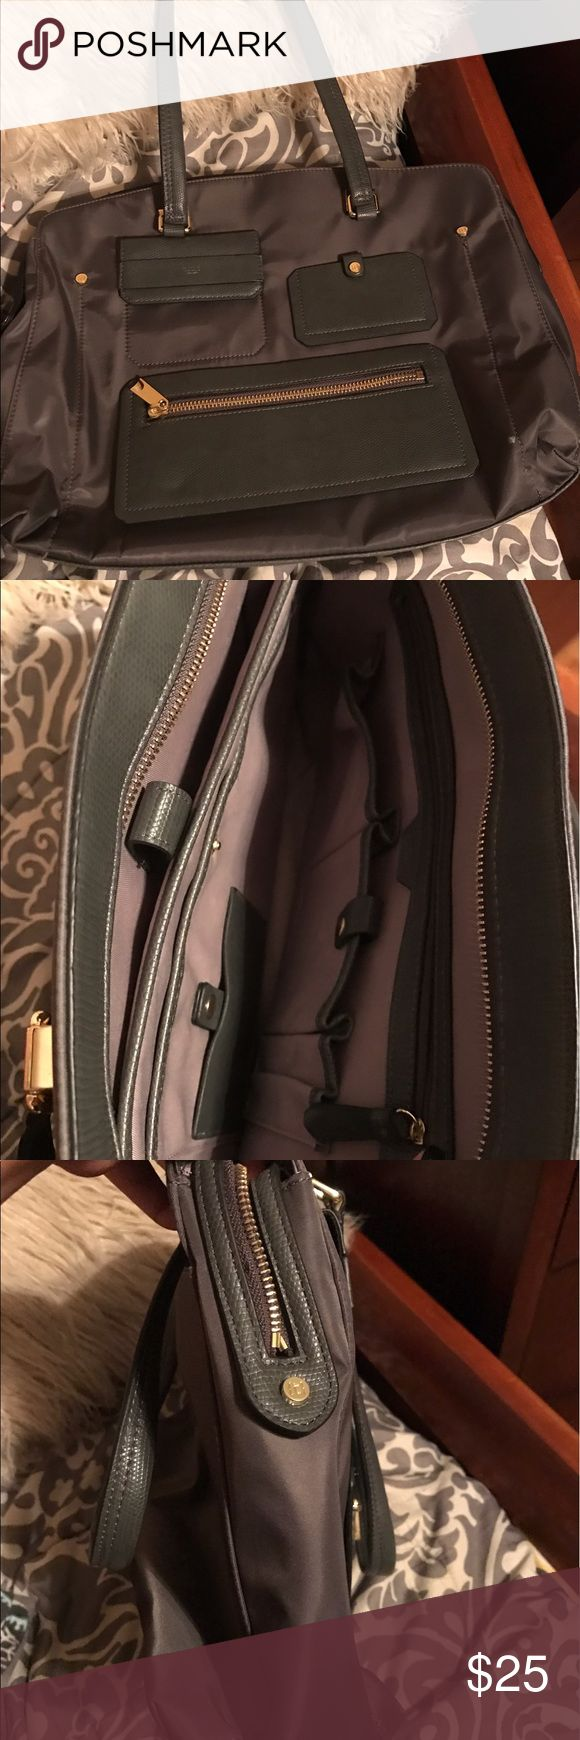 "Stylish laptop purse Never used laptop bag. Many compartments. Cute bag. Believe it can carry up to a 15"" laptop Tutilo Bags Laptop Bags"